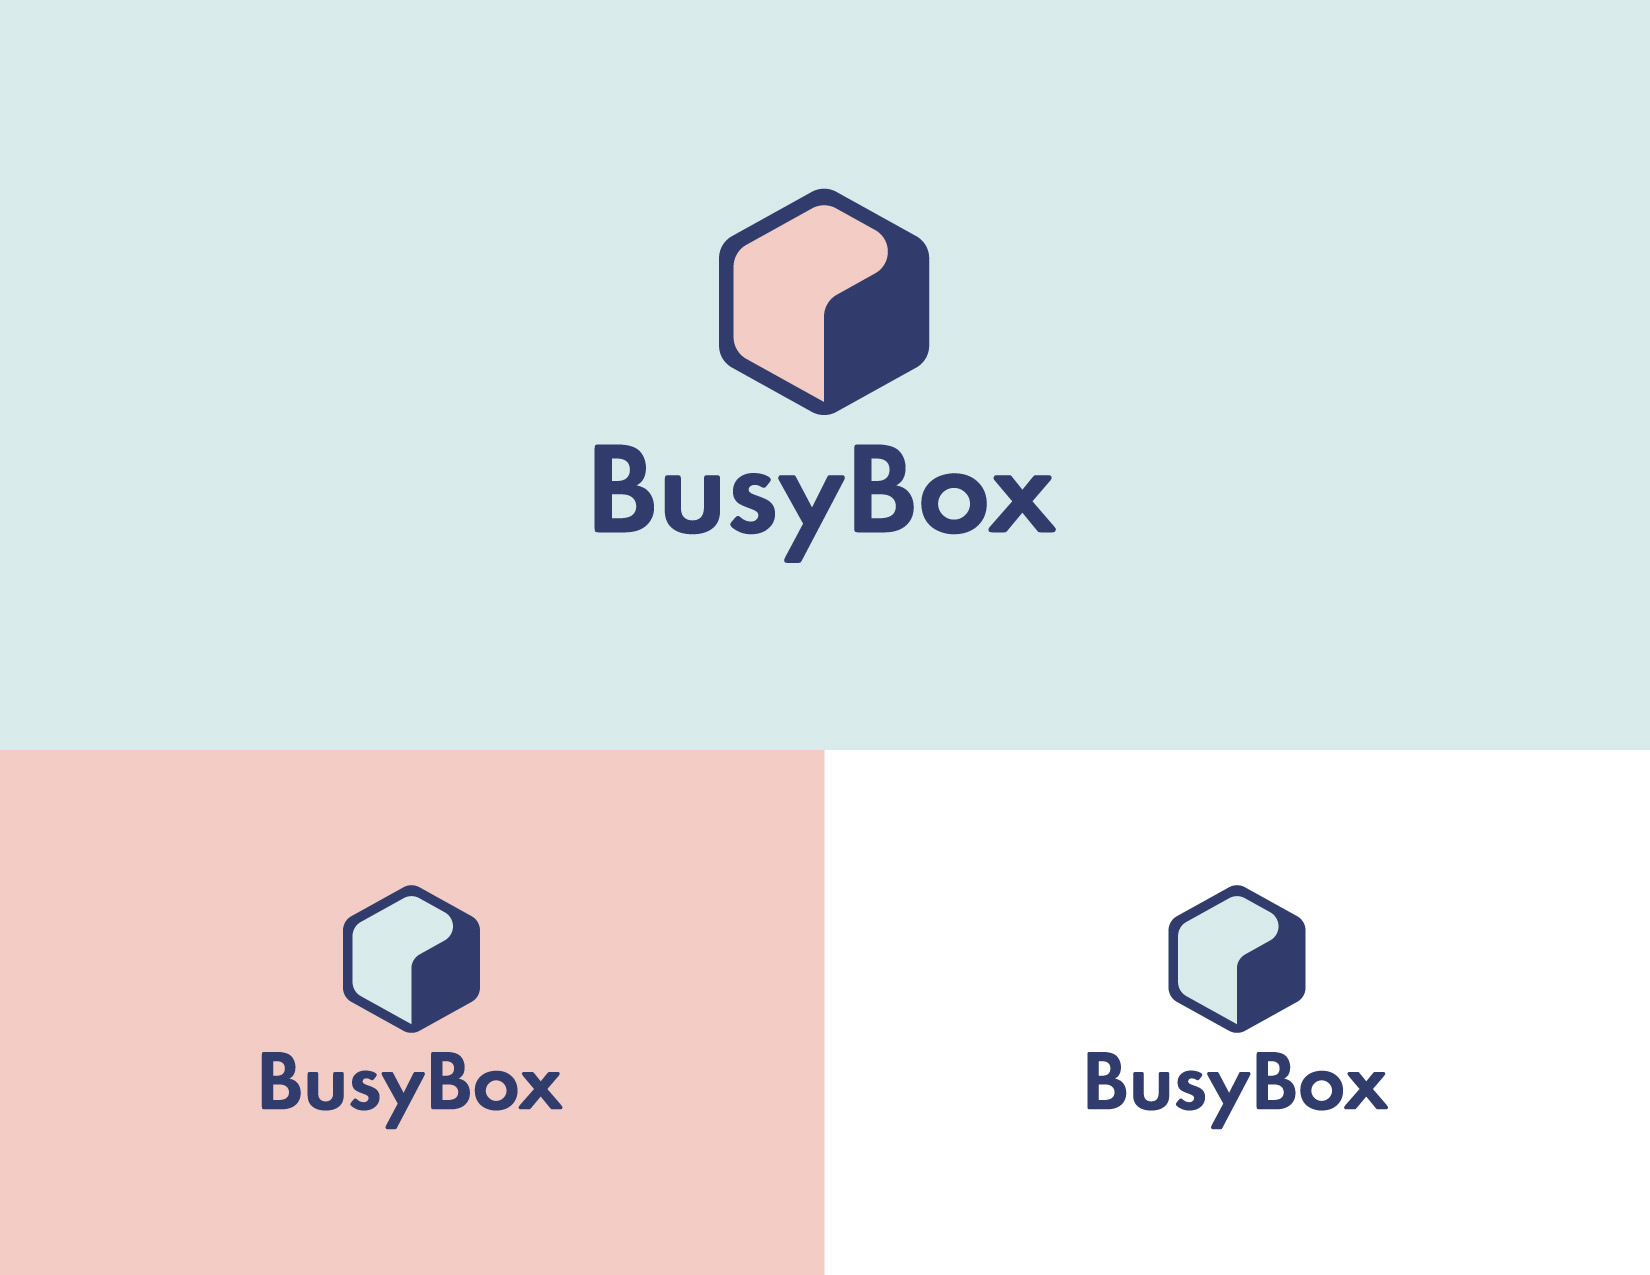 Logo design and branding for a box subscription service startup. James Cannella Marketing, Design, and Artificial Intelligence Consulting Services